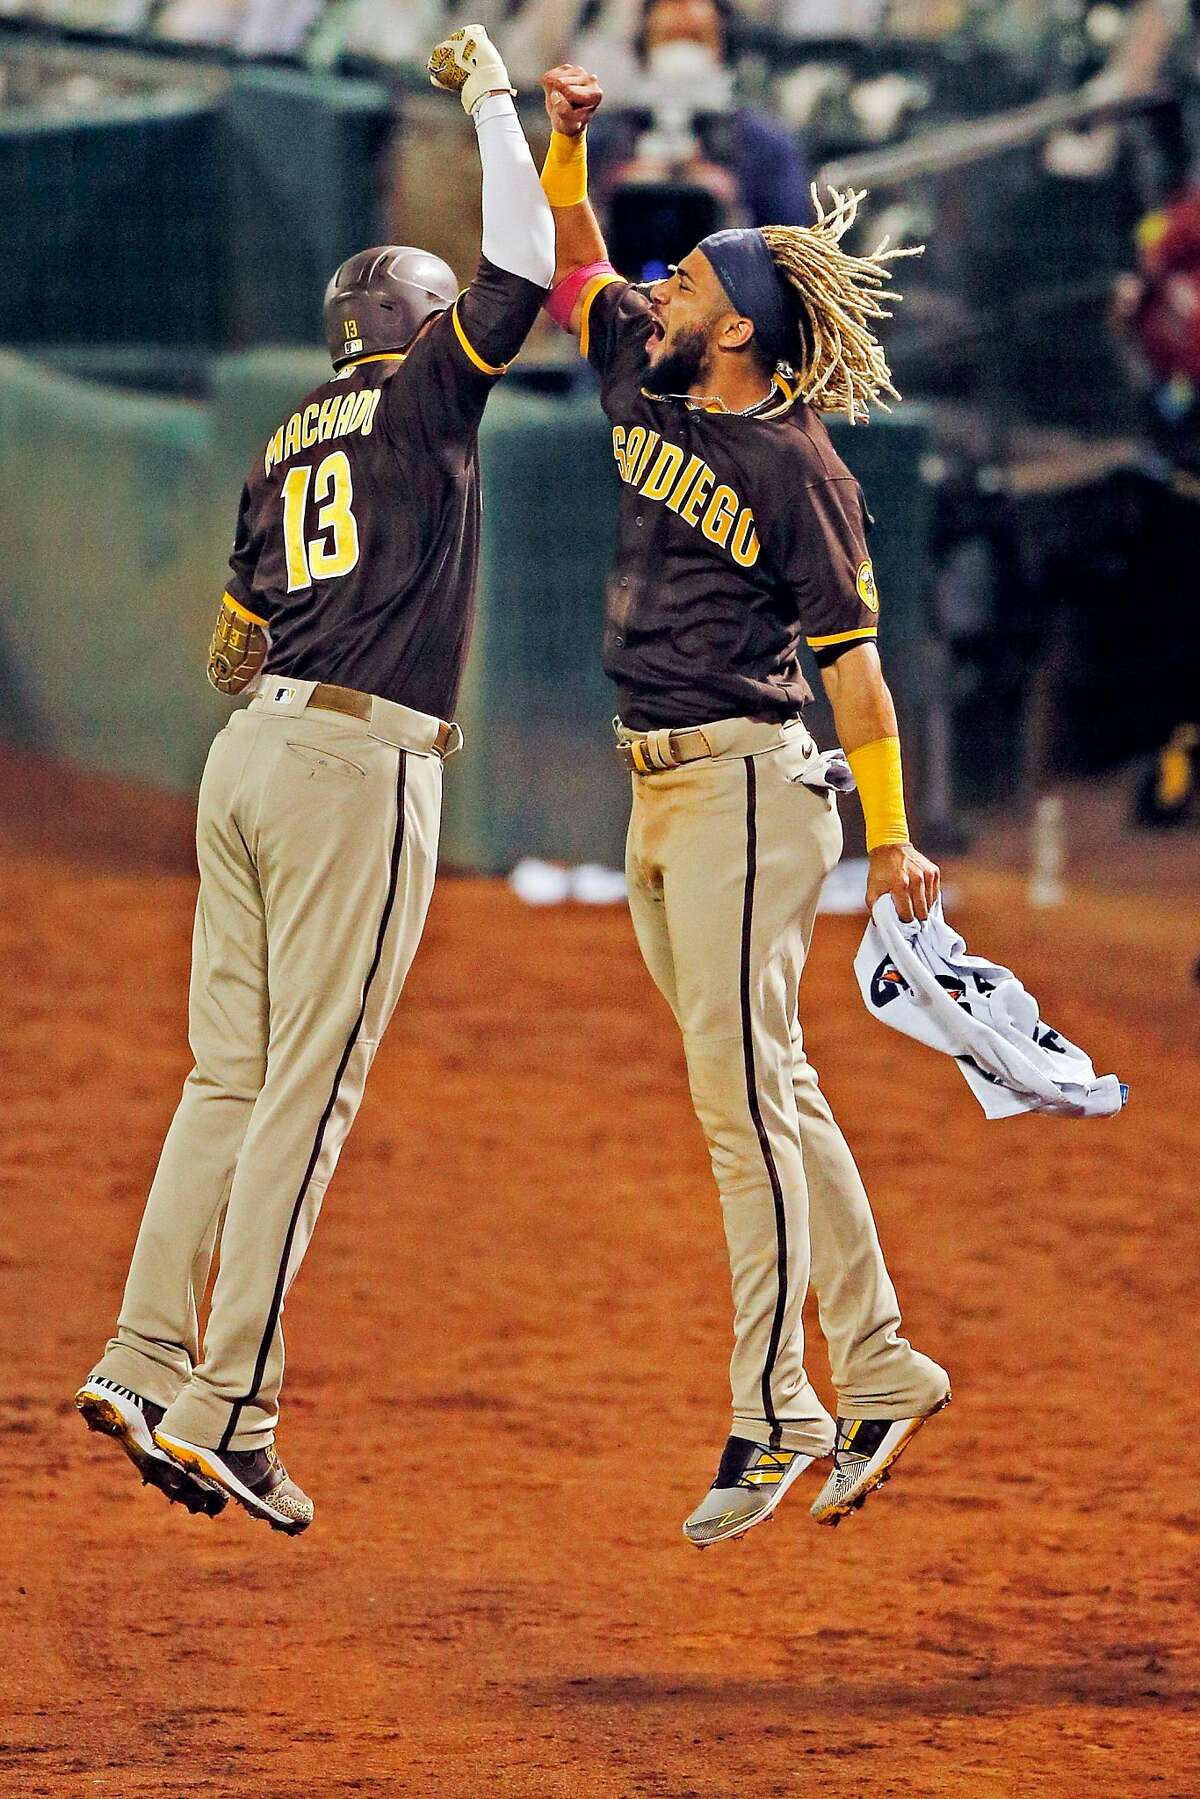 From left: San Diego Padres third baseman Manny Machado (13) and Padres shortstop Fernando Tatis Jr. (23) celebrate Machado's home run in the seventh inning of an MLB game against the Oakland Athletics at RingCentral Coliseum on Friday, Sept. 4, 2020, in Oakland, Calif.